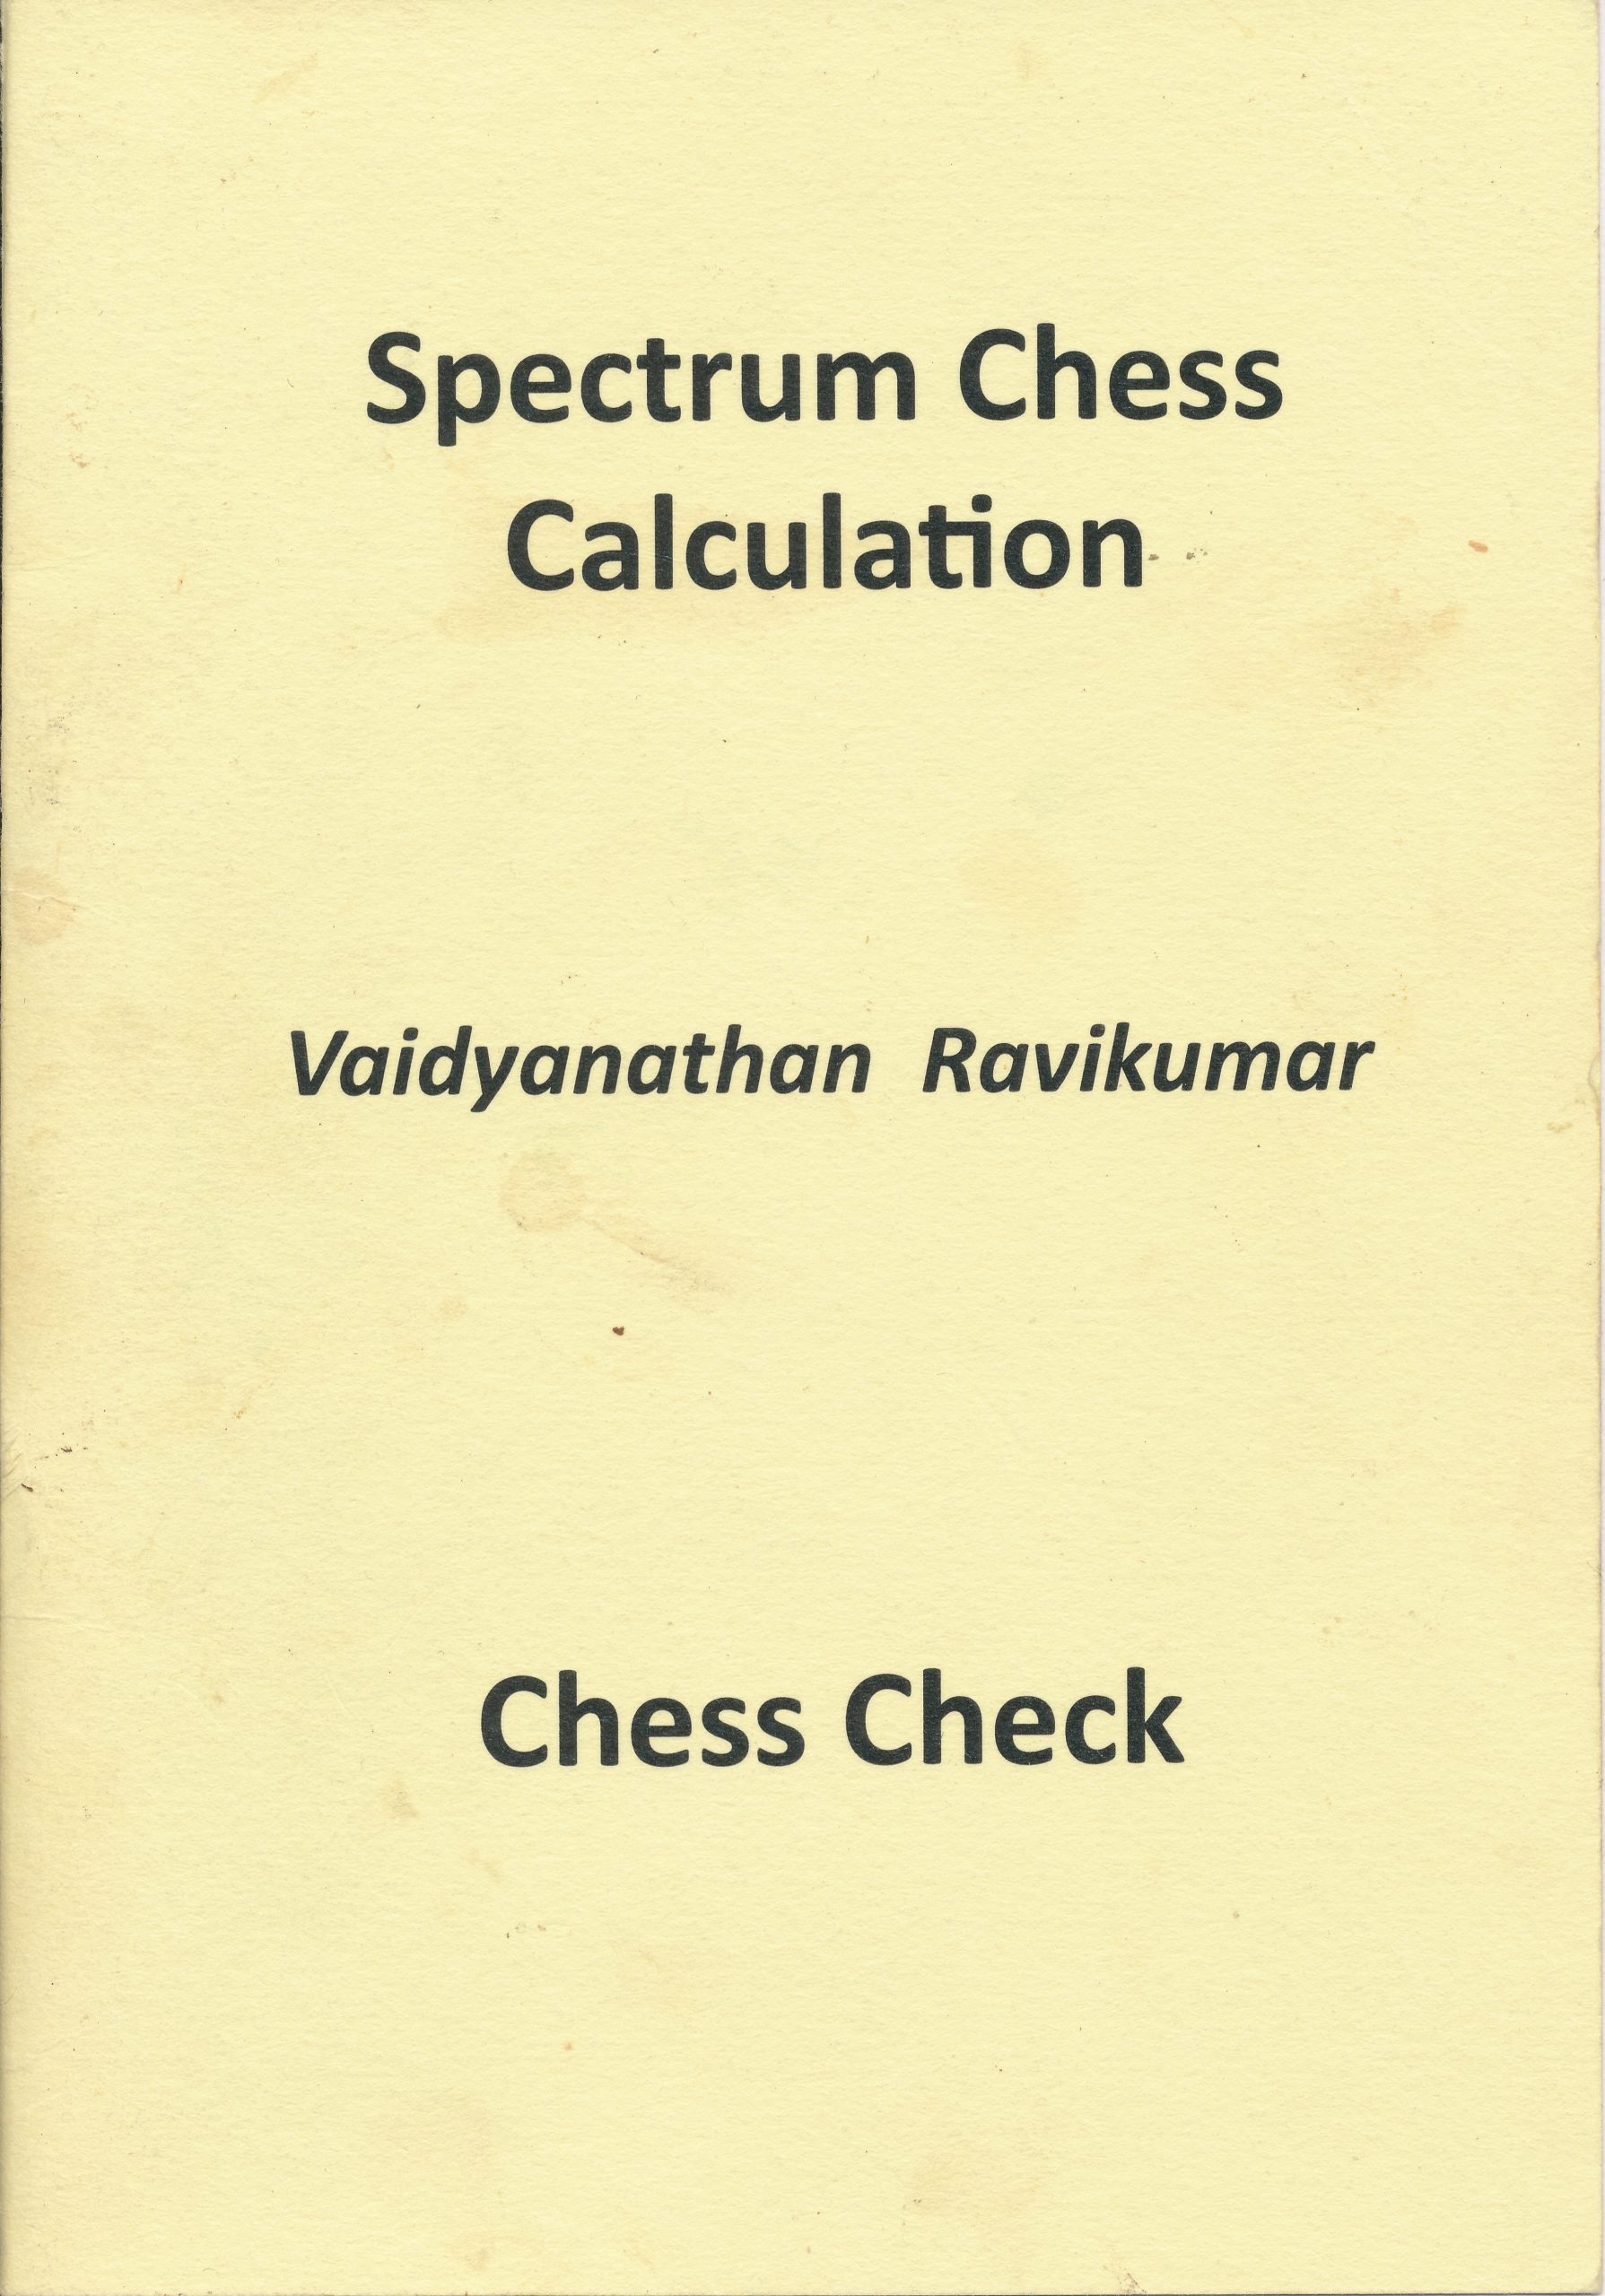 Spectrum Chess Calculation, Vaidyanathan Ravikumar, Chess Check, 2011